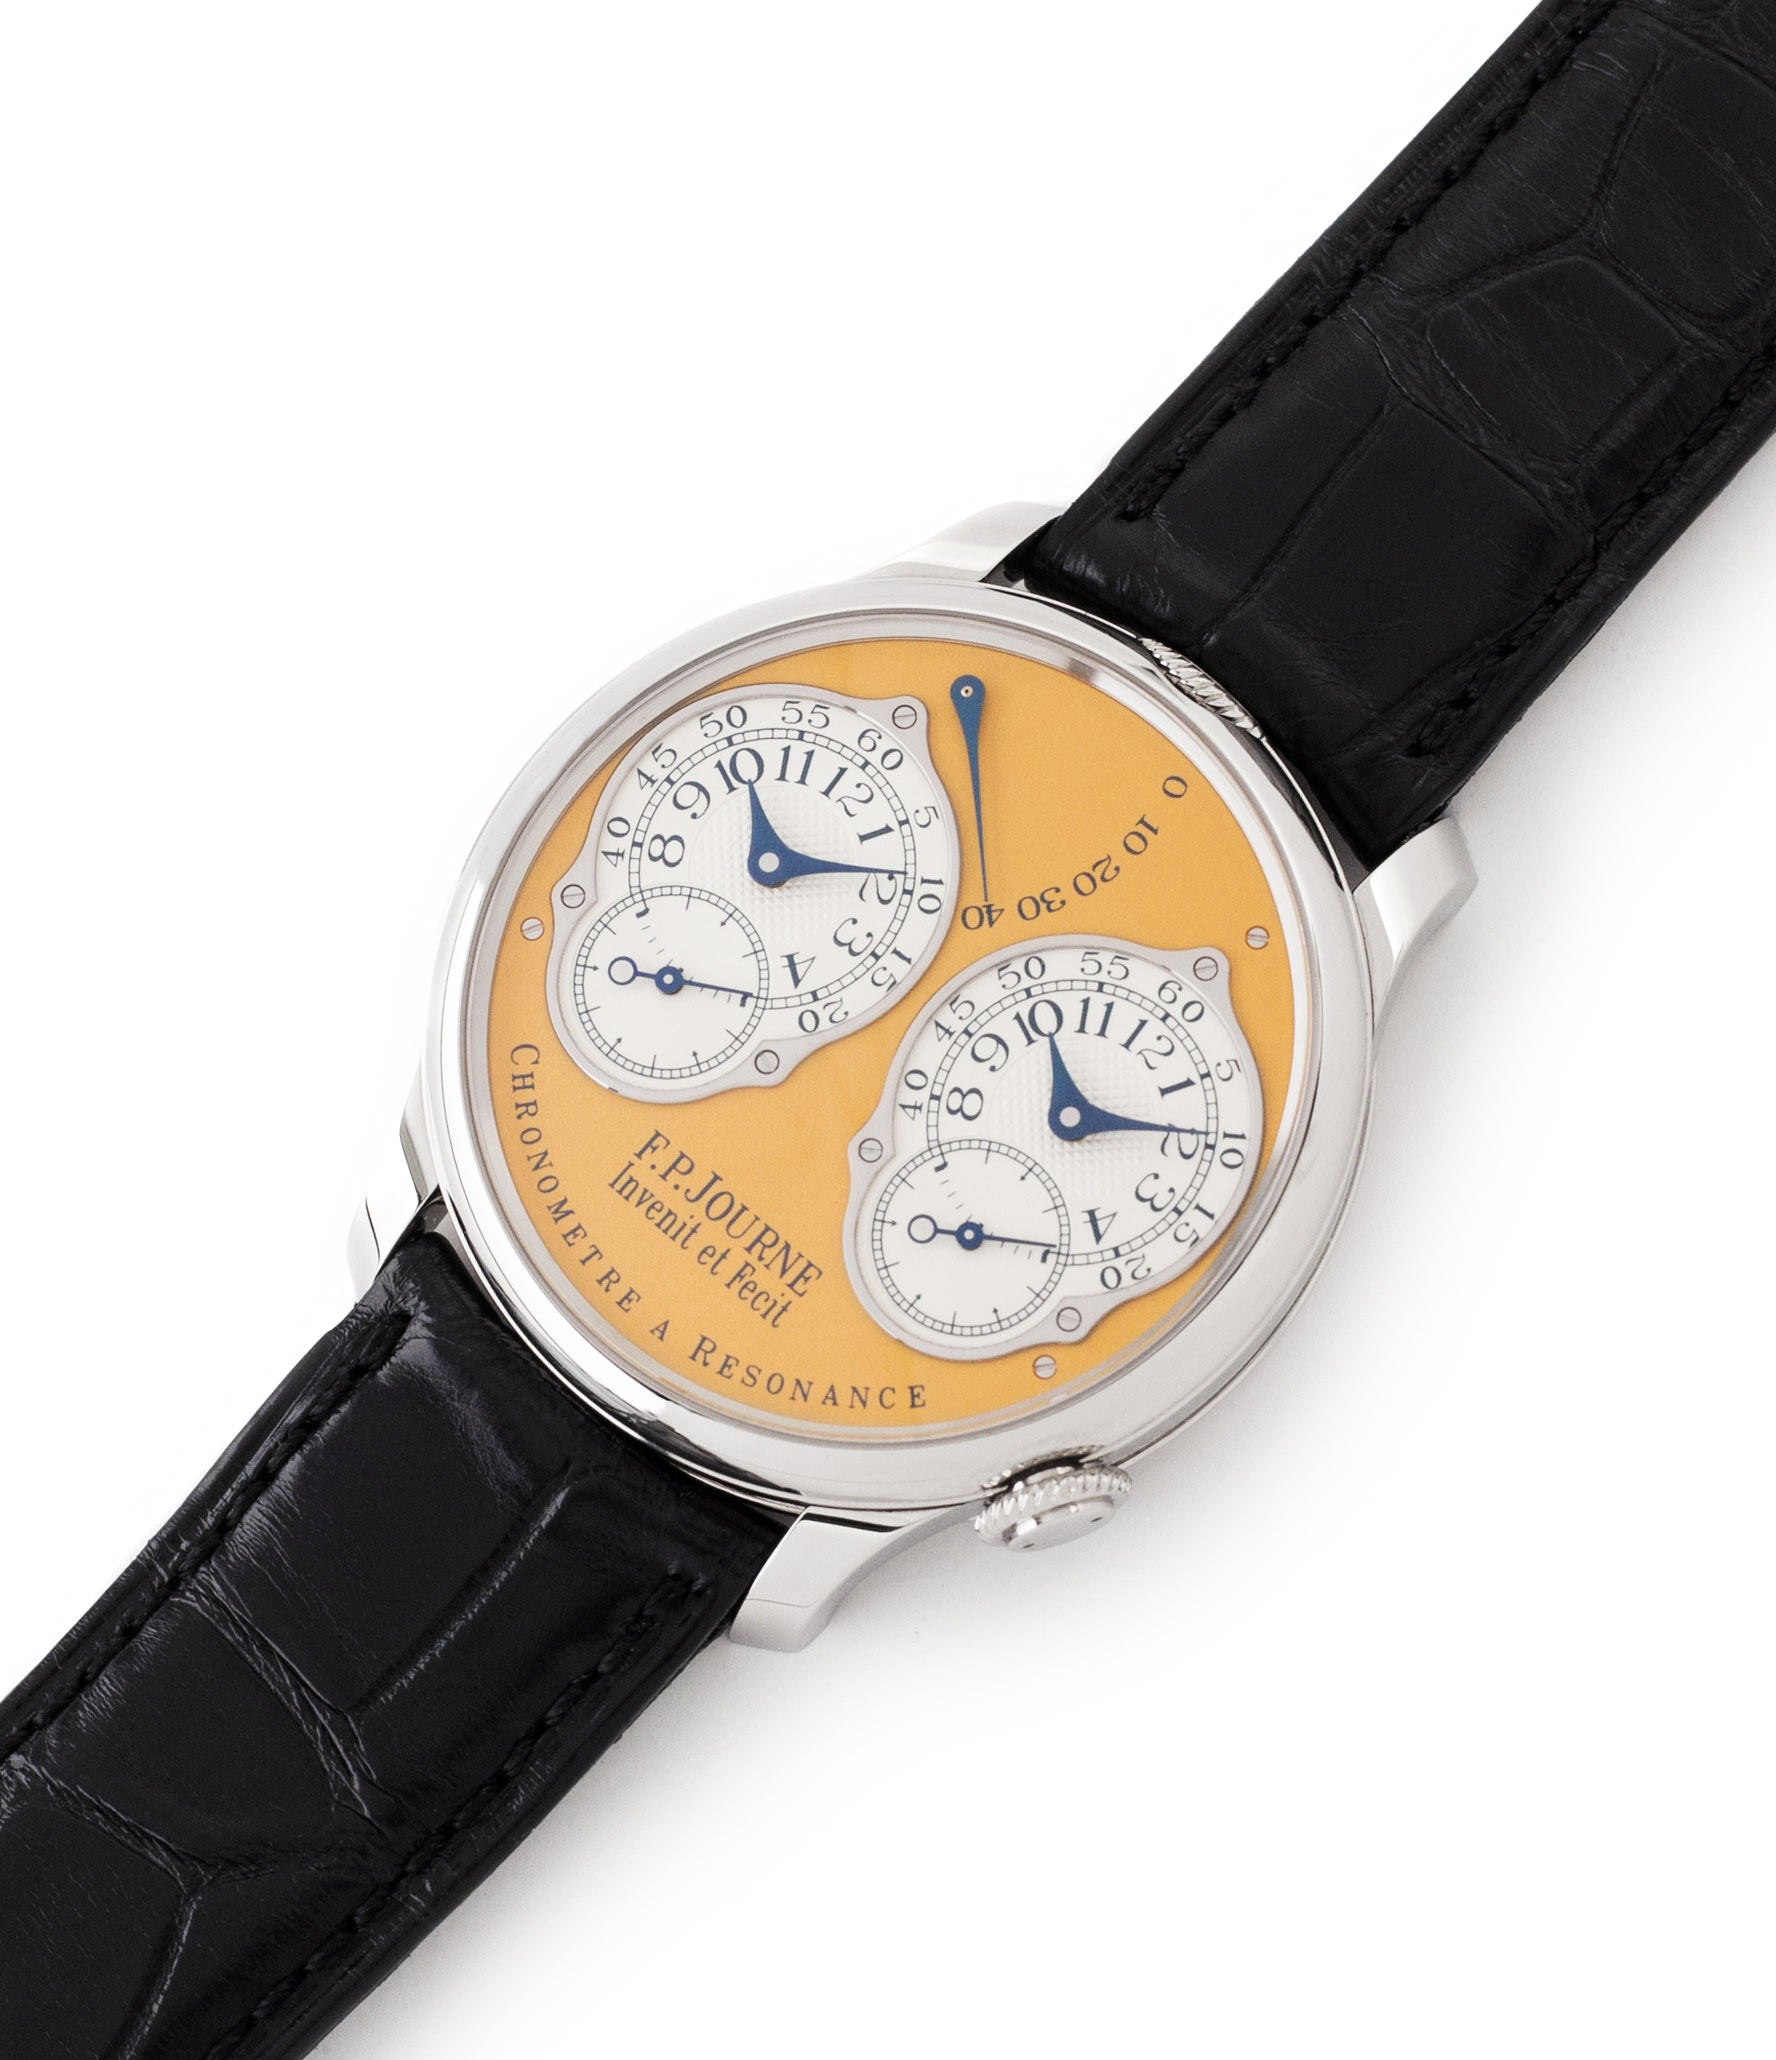 preowned F. P. Journe Chronomètre à Résonance Steel 38 mm Limited Edition Set of 5 watches for sale online at A Collected Man London approved UK retailer independent watchmakers